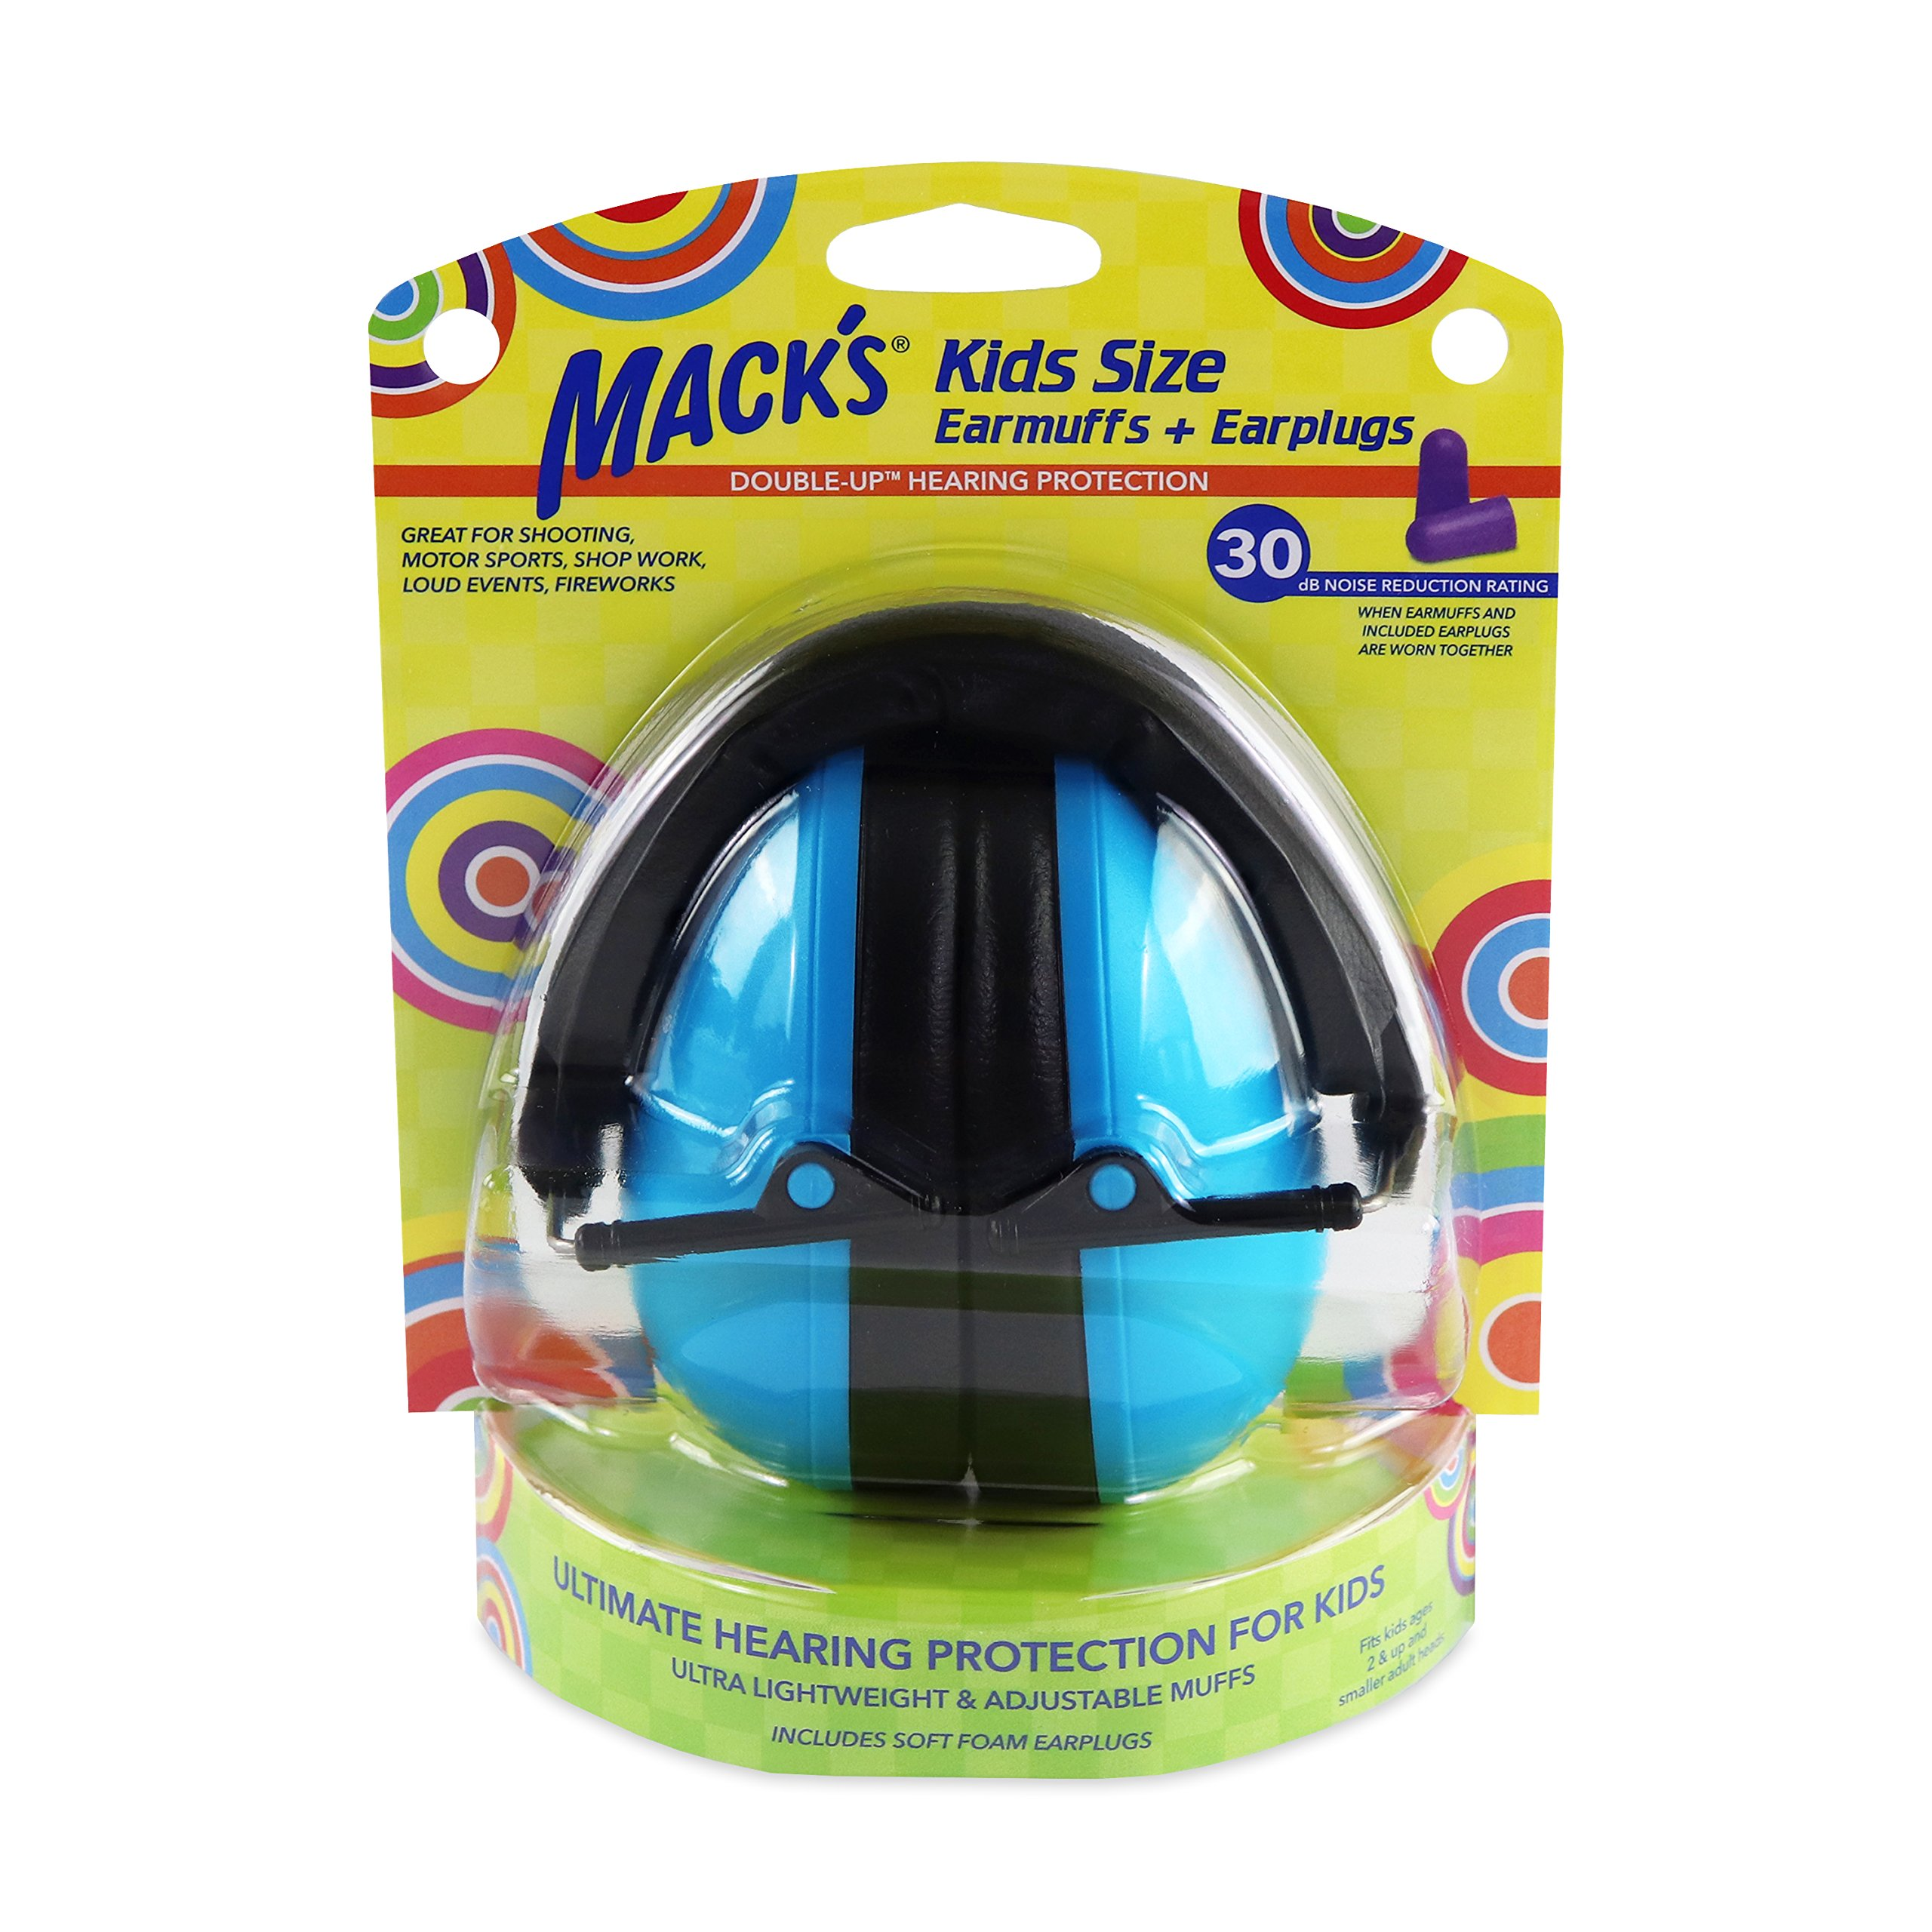 Mack's Double-Up Hearing Protection Kids Earmuffs with Earplugs – Highest NRR 30dB – Comfortable, Adjustable, Foldable Kids Ear Protection for Loud Events, Shooting and Motor Sports (Blue)